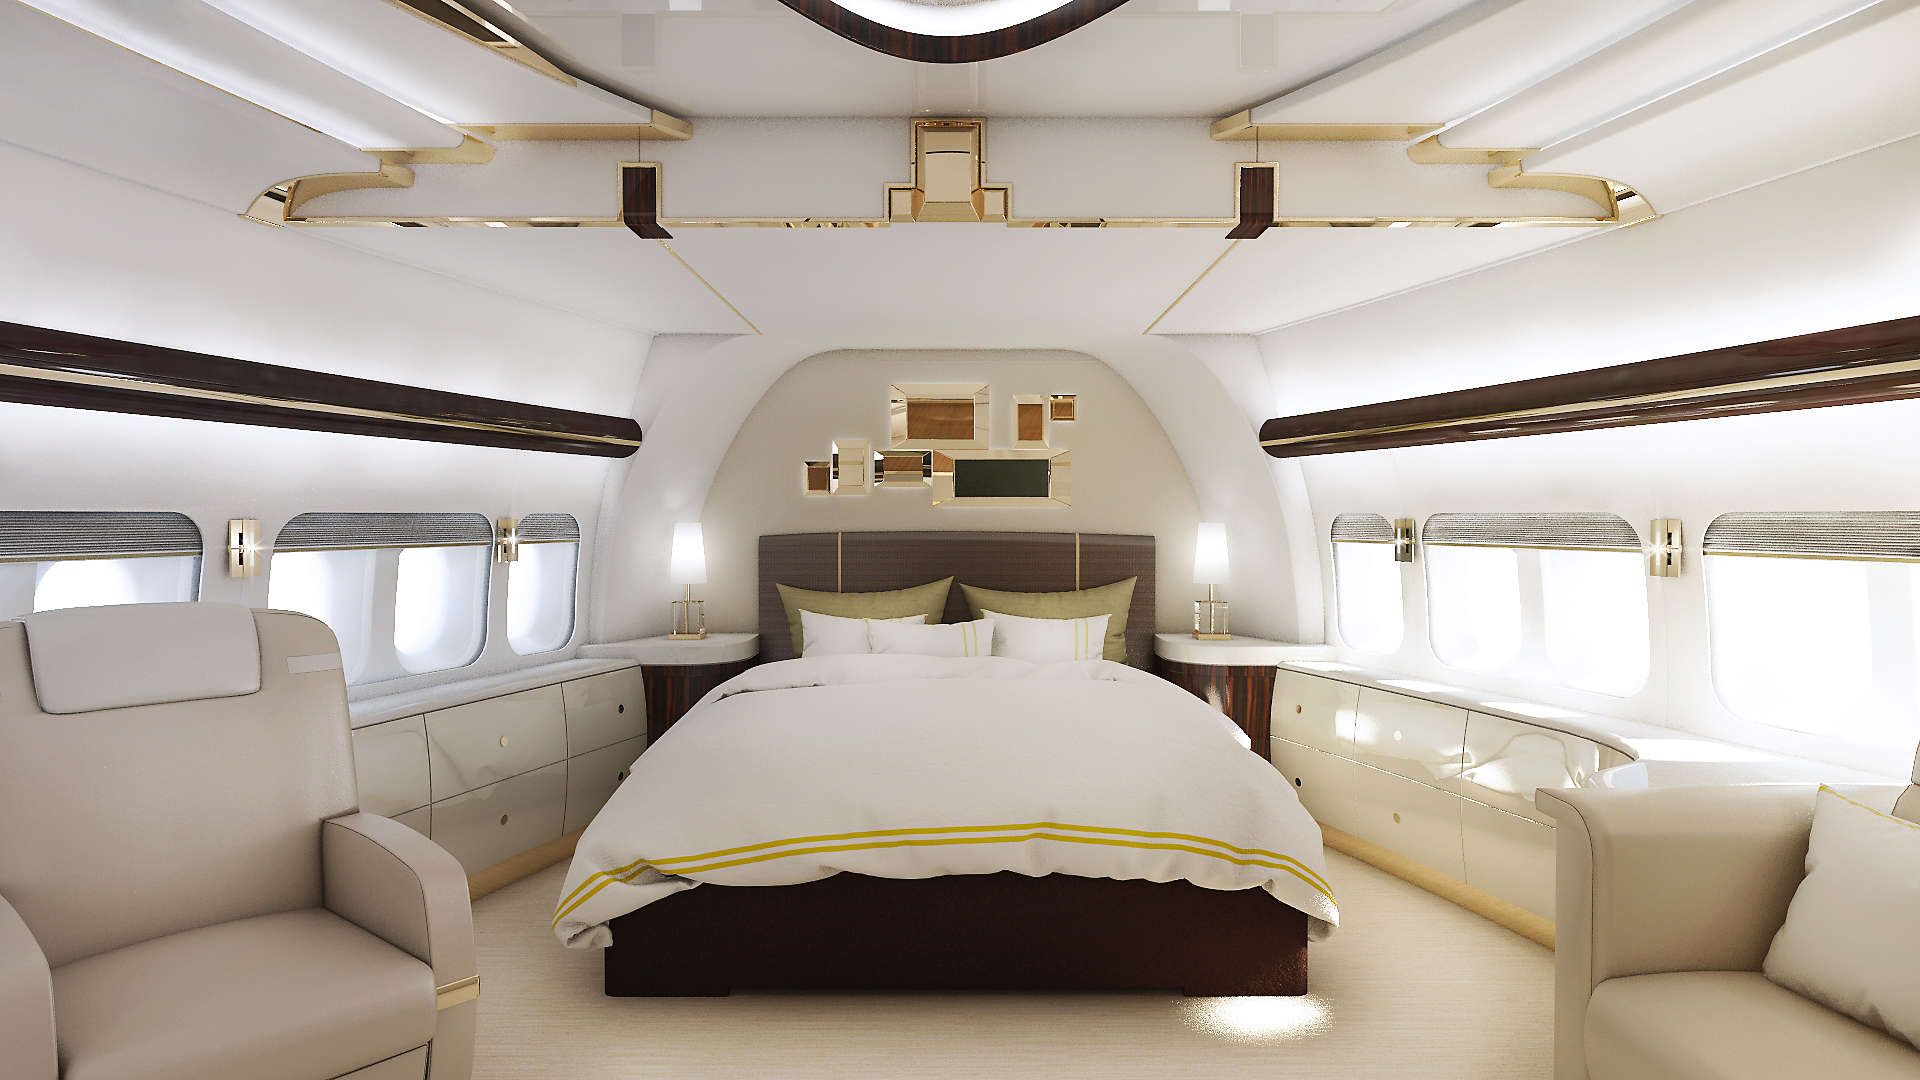 As airlines retire their 747s, one wealthy individual bought a new jumbo to be his private jet...